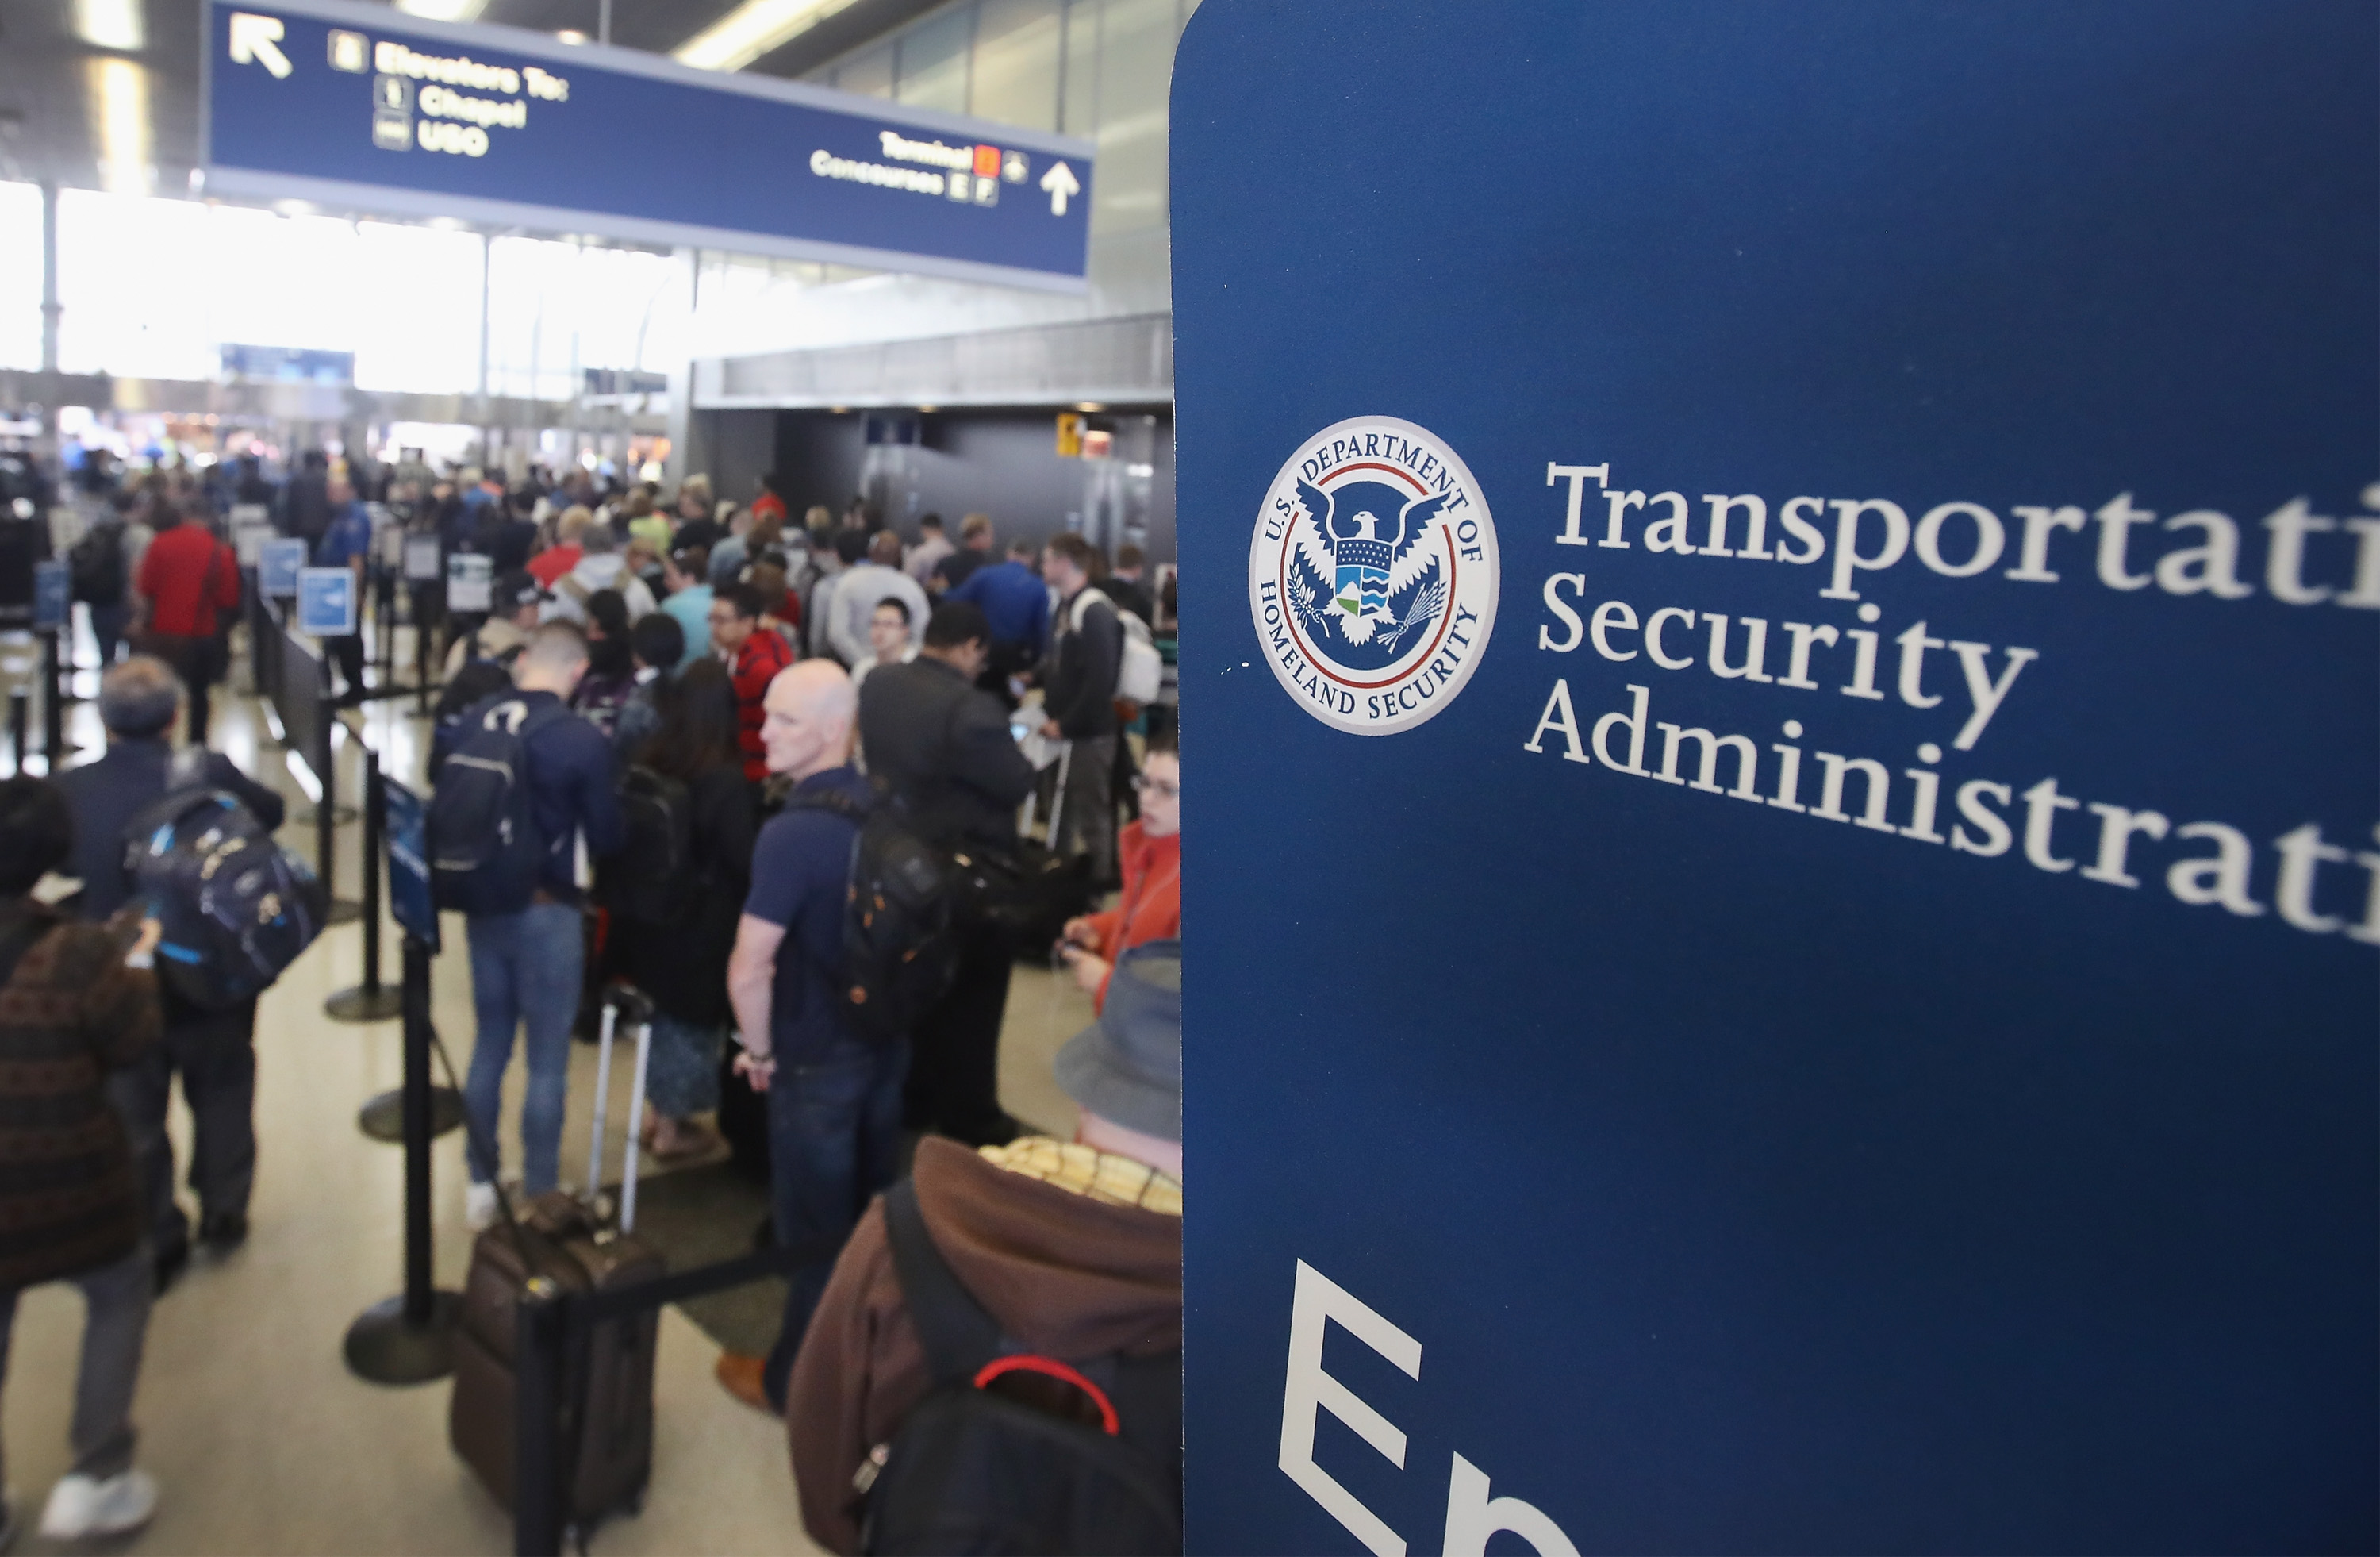 The TSA will now require separate screenings for all